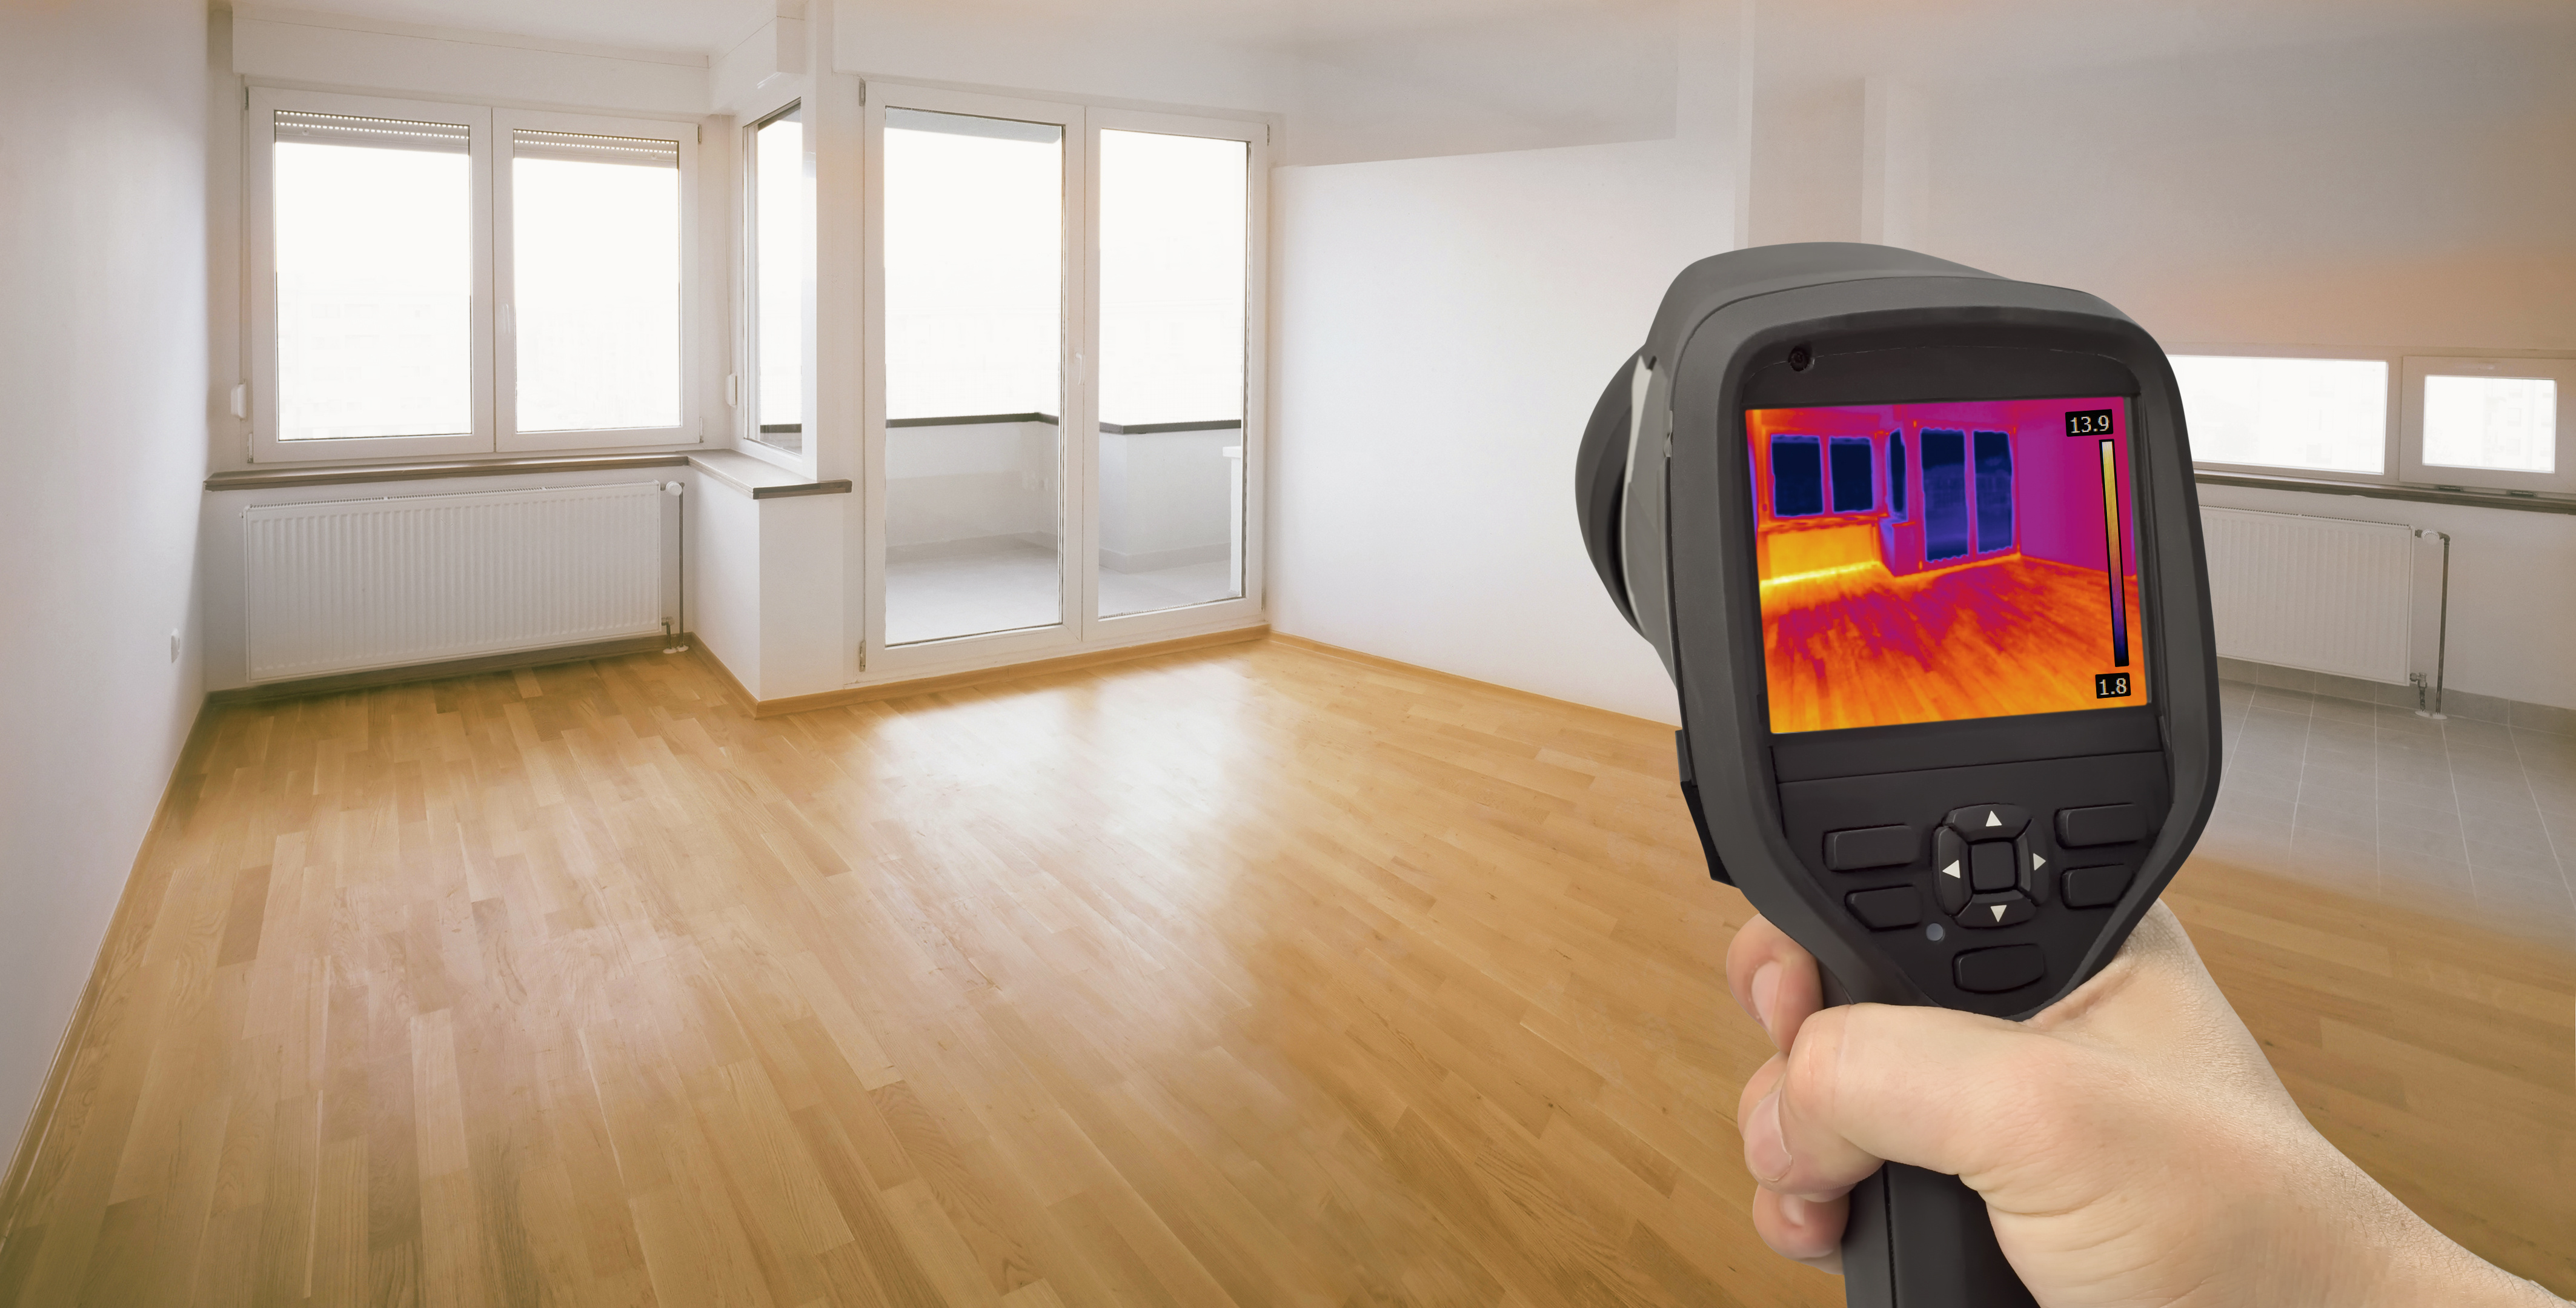 How to Detect Water Leaks At Home